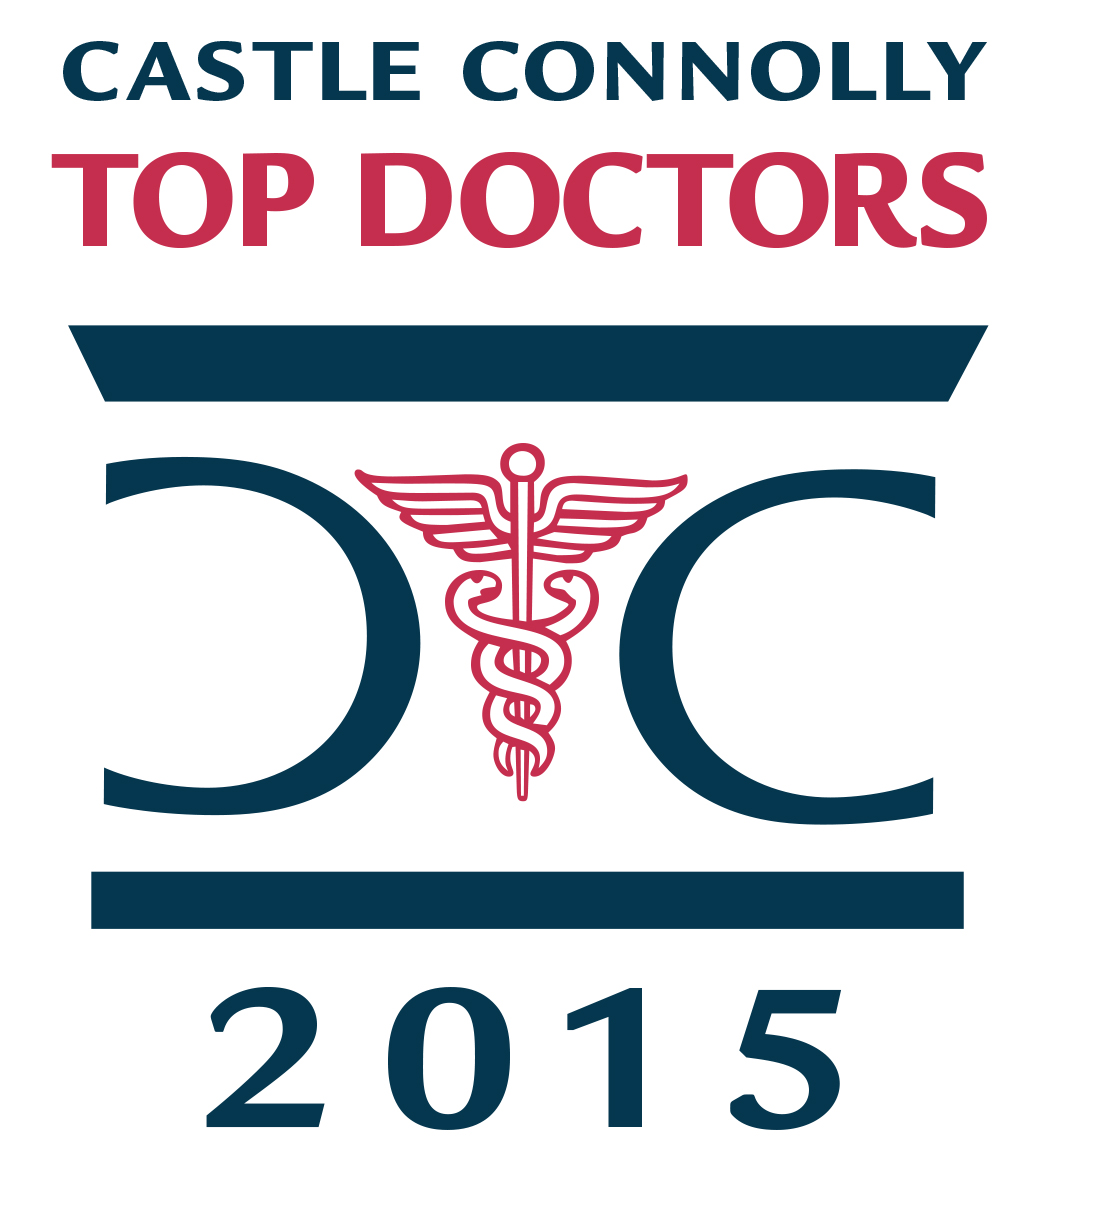 Castle Connolly Top Doctors 2015 Logo